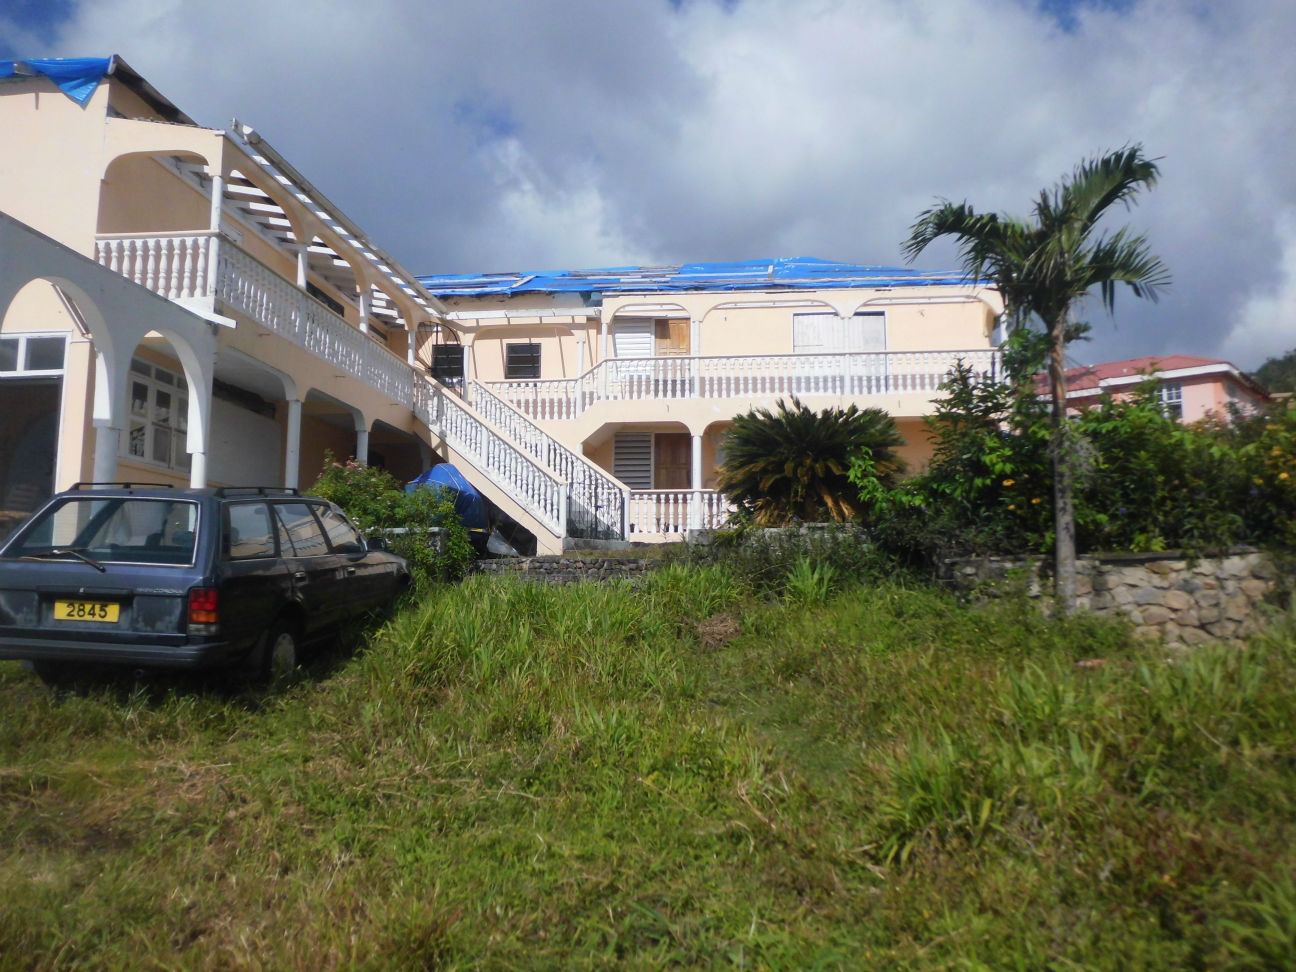 Dominica Real Estate: 6 Bedroom Home For Sale In Need Of Repairs